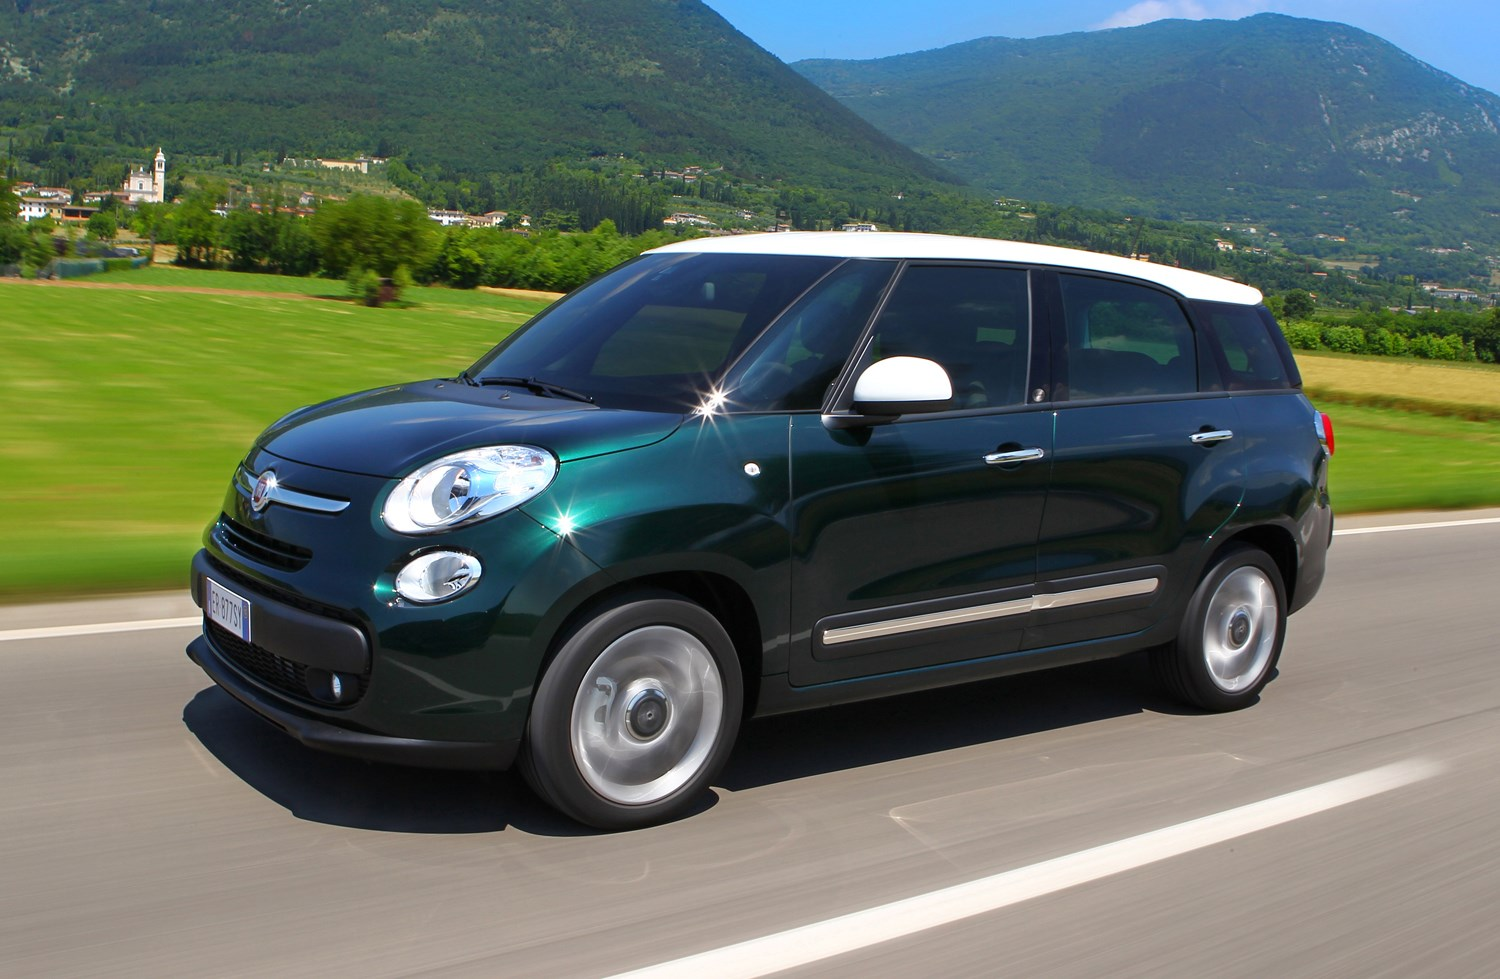 Fiat 500l Mpw Estate 2013 2017 Features Equipment And 500 Spare Tire Location How Much Is It To Insure